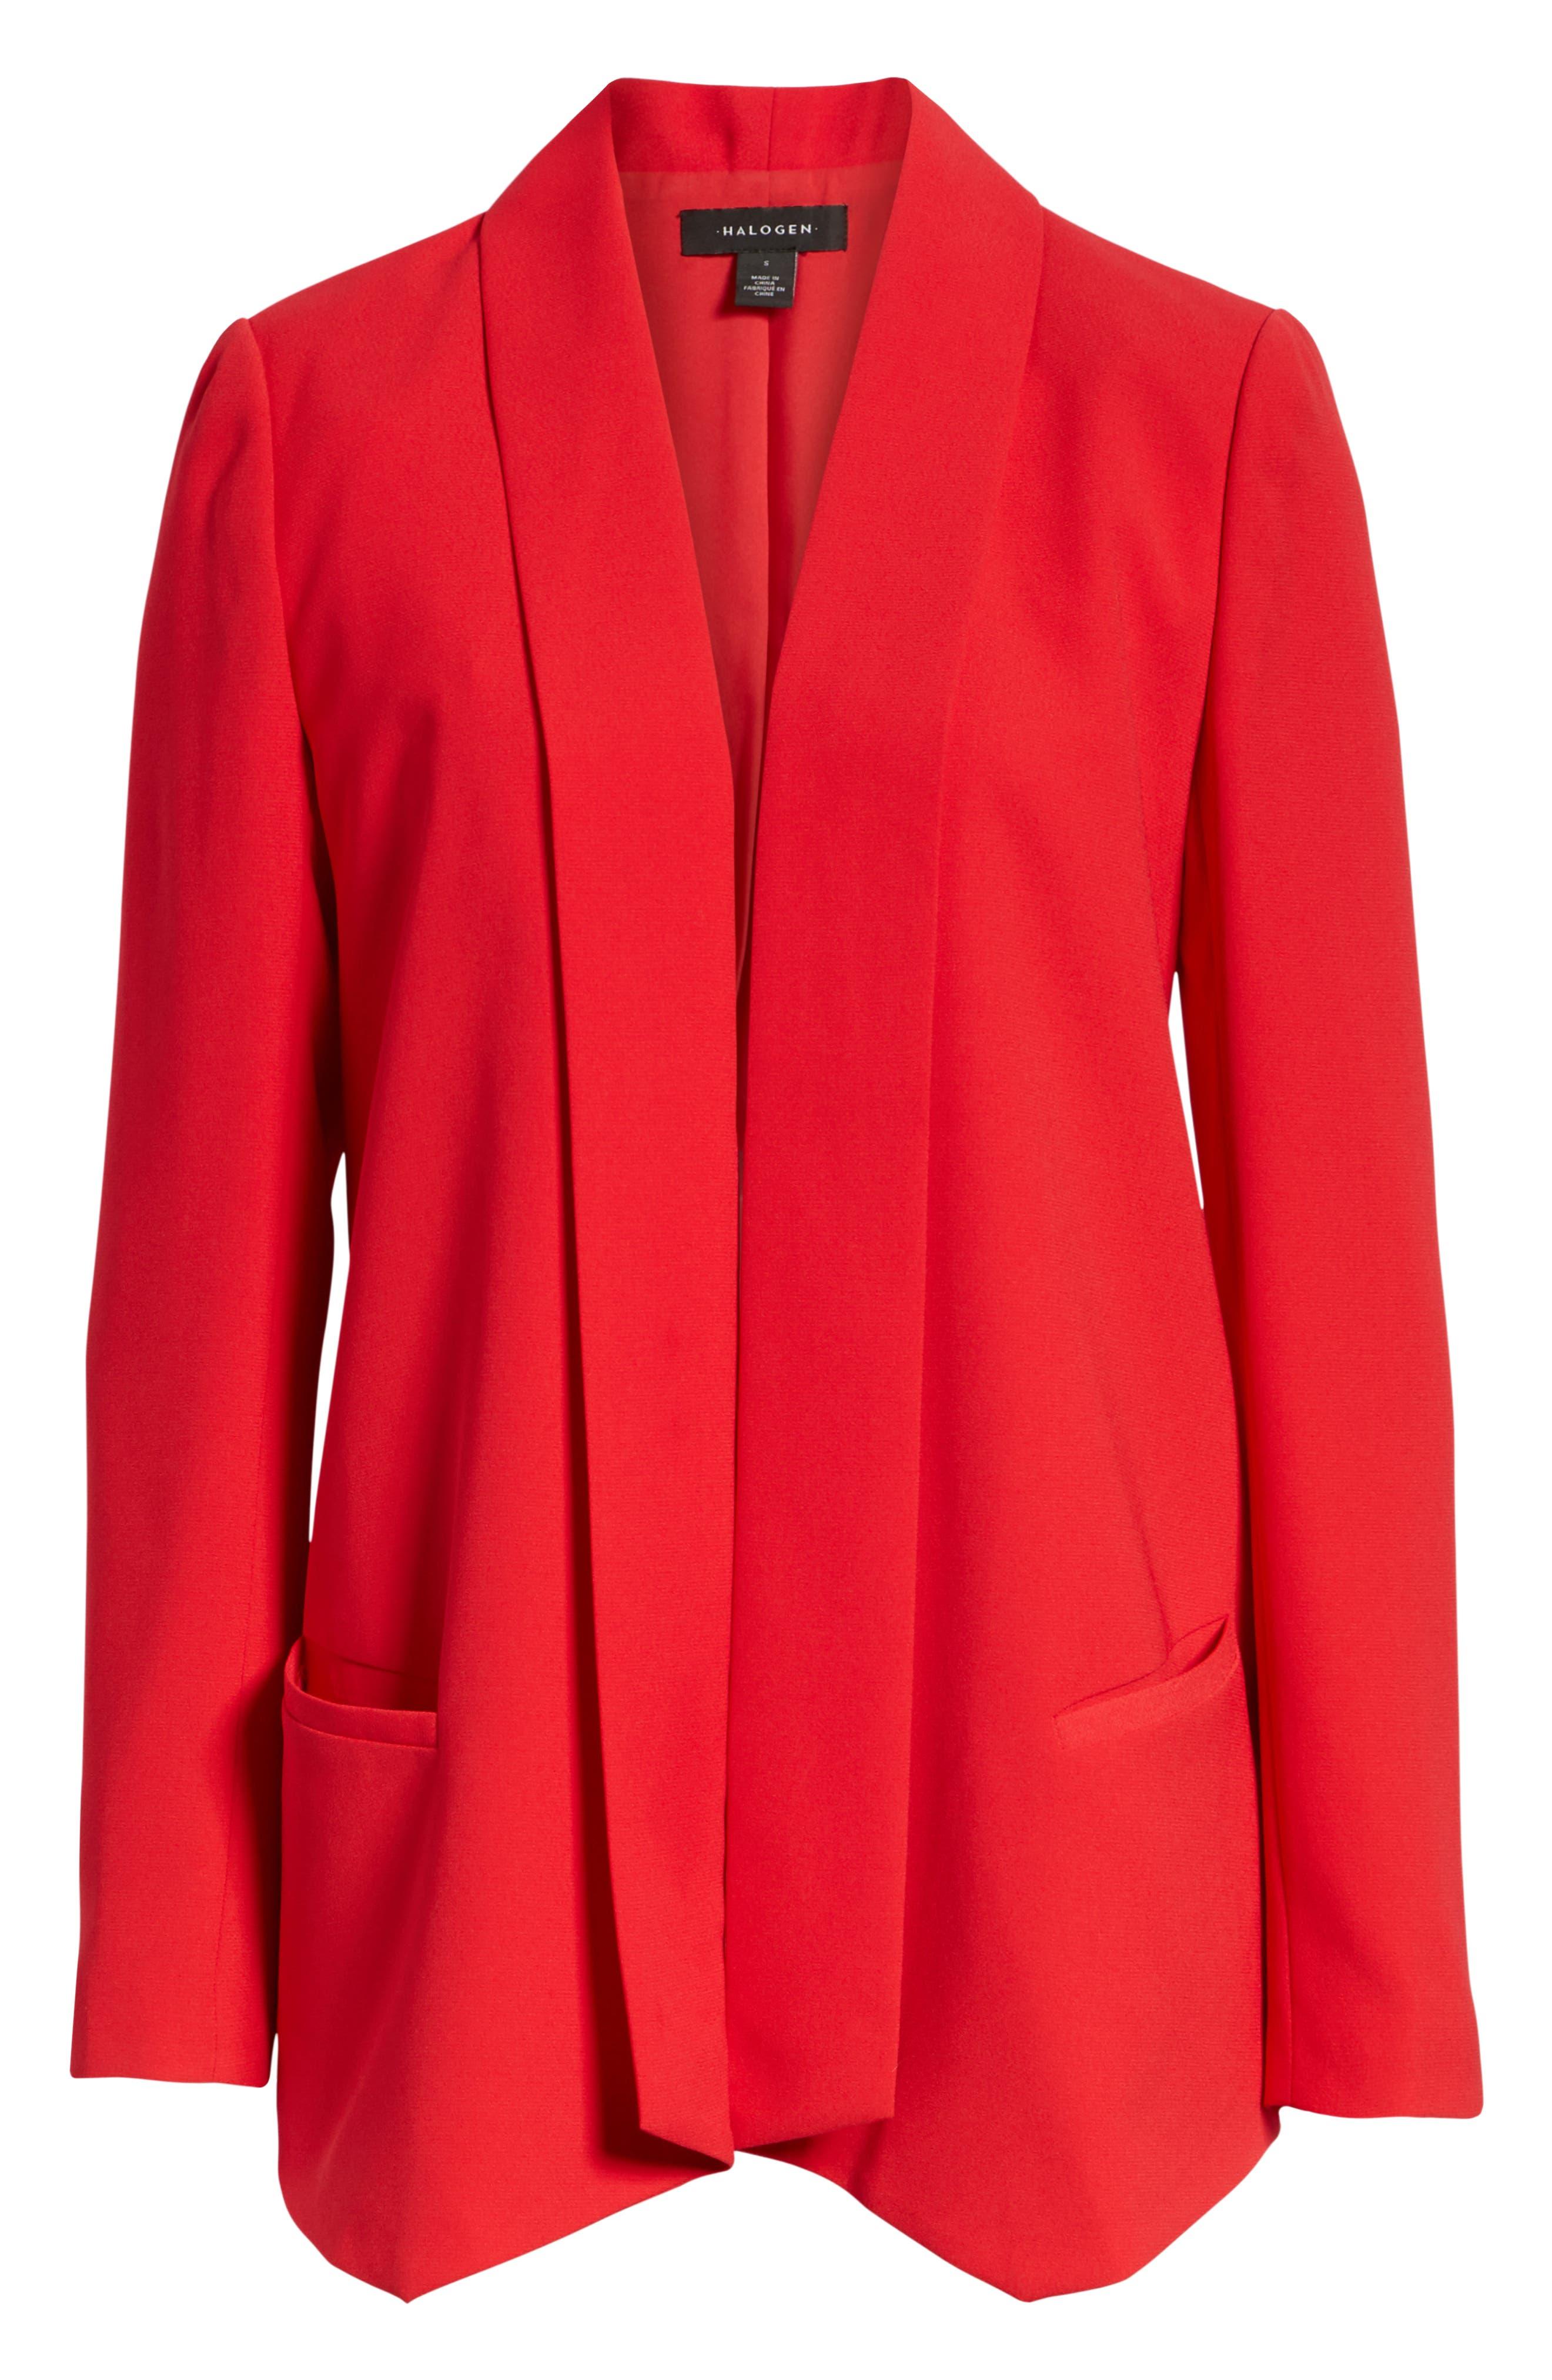 Shawl Collar Blazer,                             Alternate thumbnail 6, color,                             RED CHINOISE